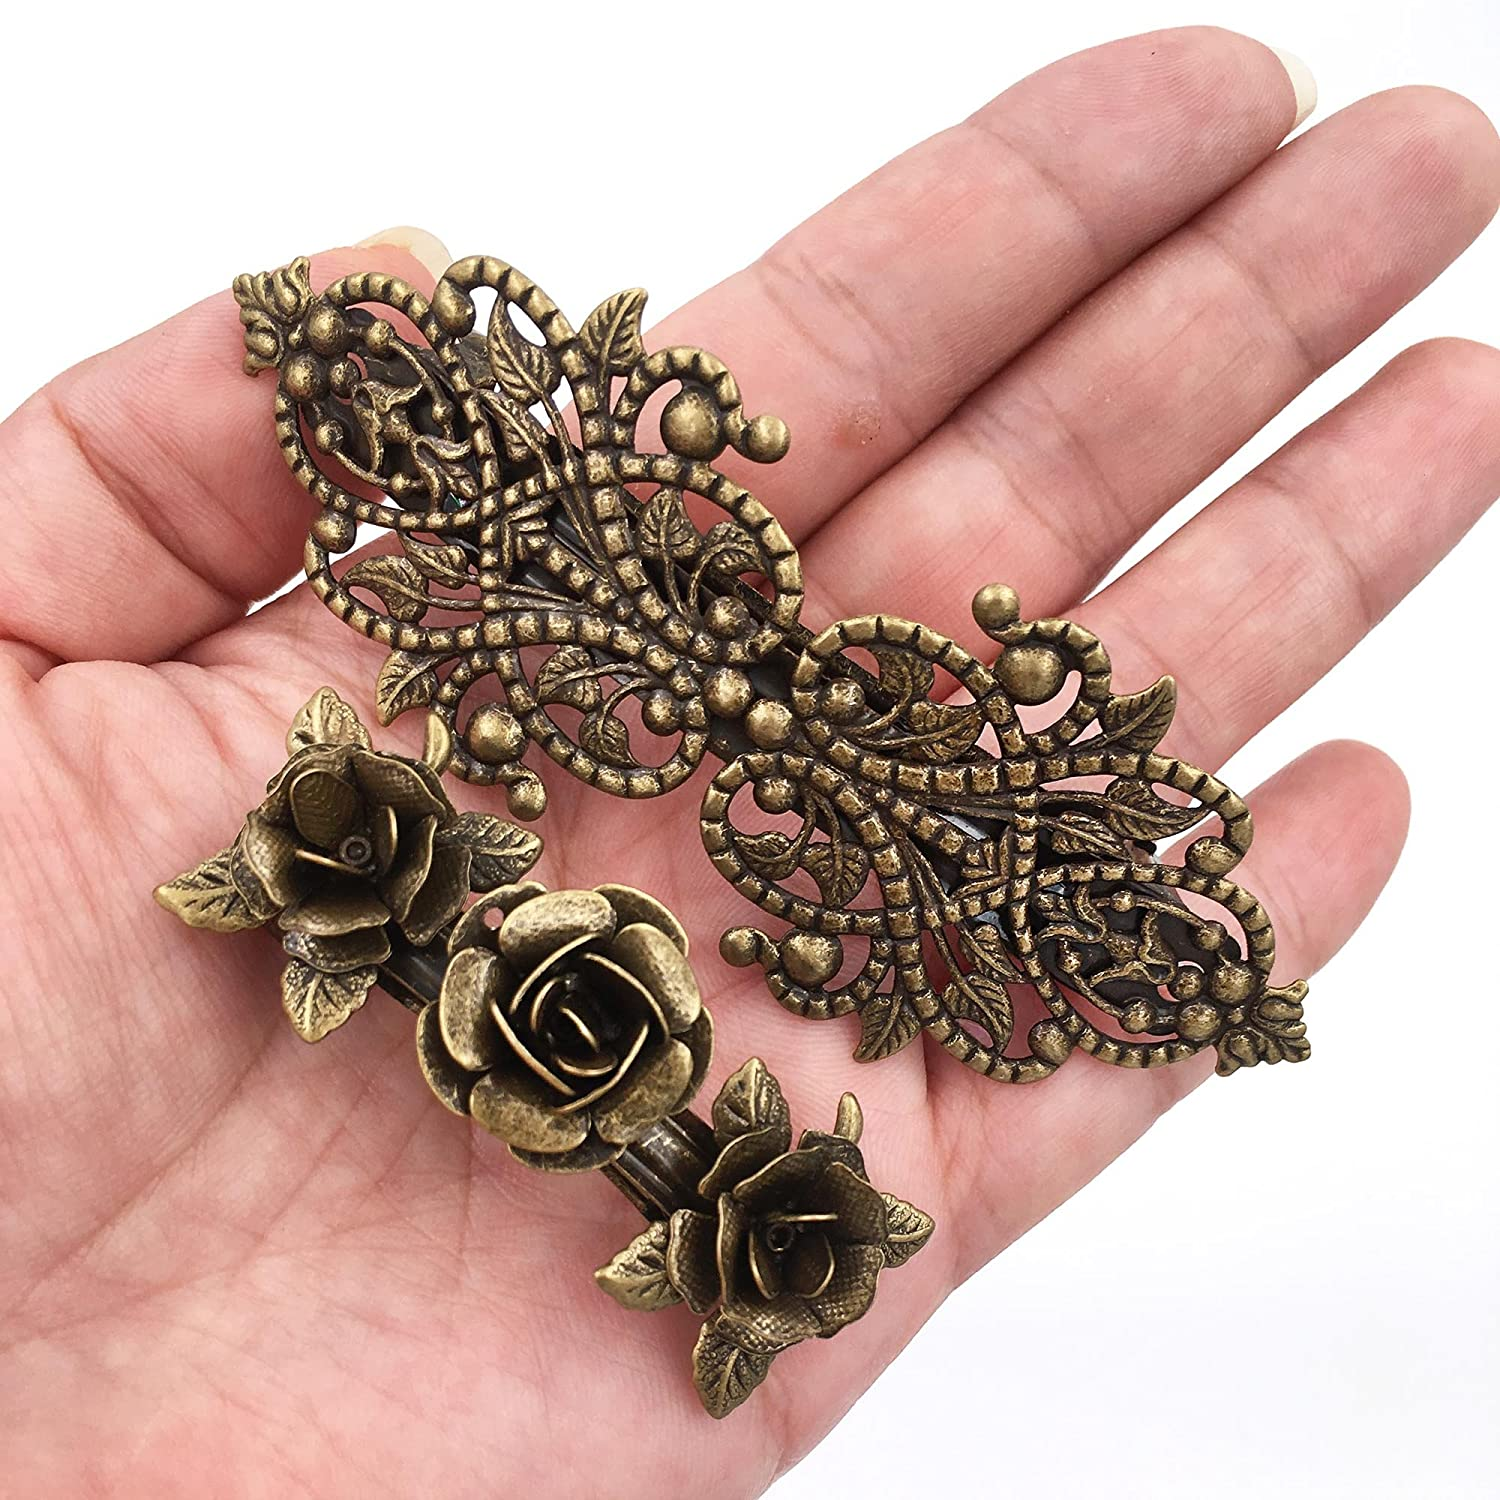 Round Antique 85mm Bronze Clips with Cabochon Settings Fits 20mm C414 5 Hair Clips 50p Each! 5 Iron Based Alloy Barrette Hair Clips